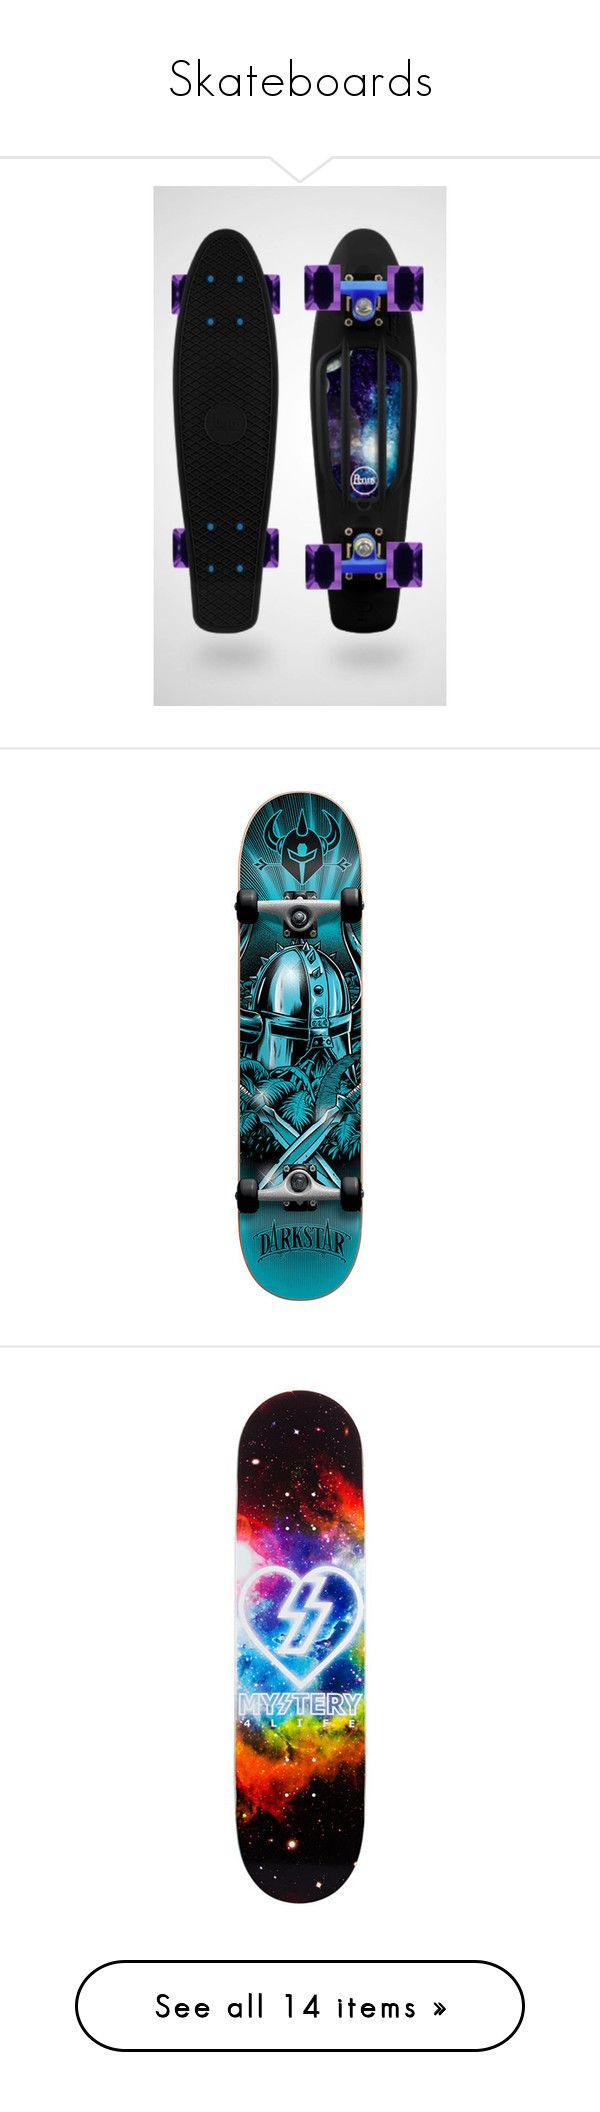 """Skateboards"" by shadowfang52 on Polyvore featuring skateboards, accessories, other, boards, penny boards, fillers, backgrounds, skateboard, misc and hobbies"